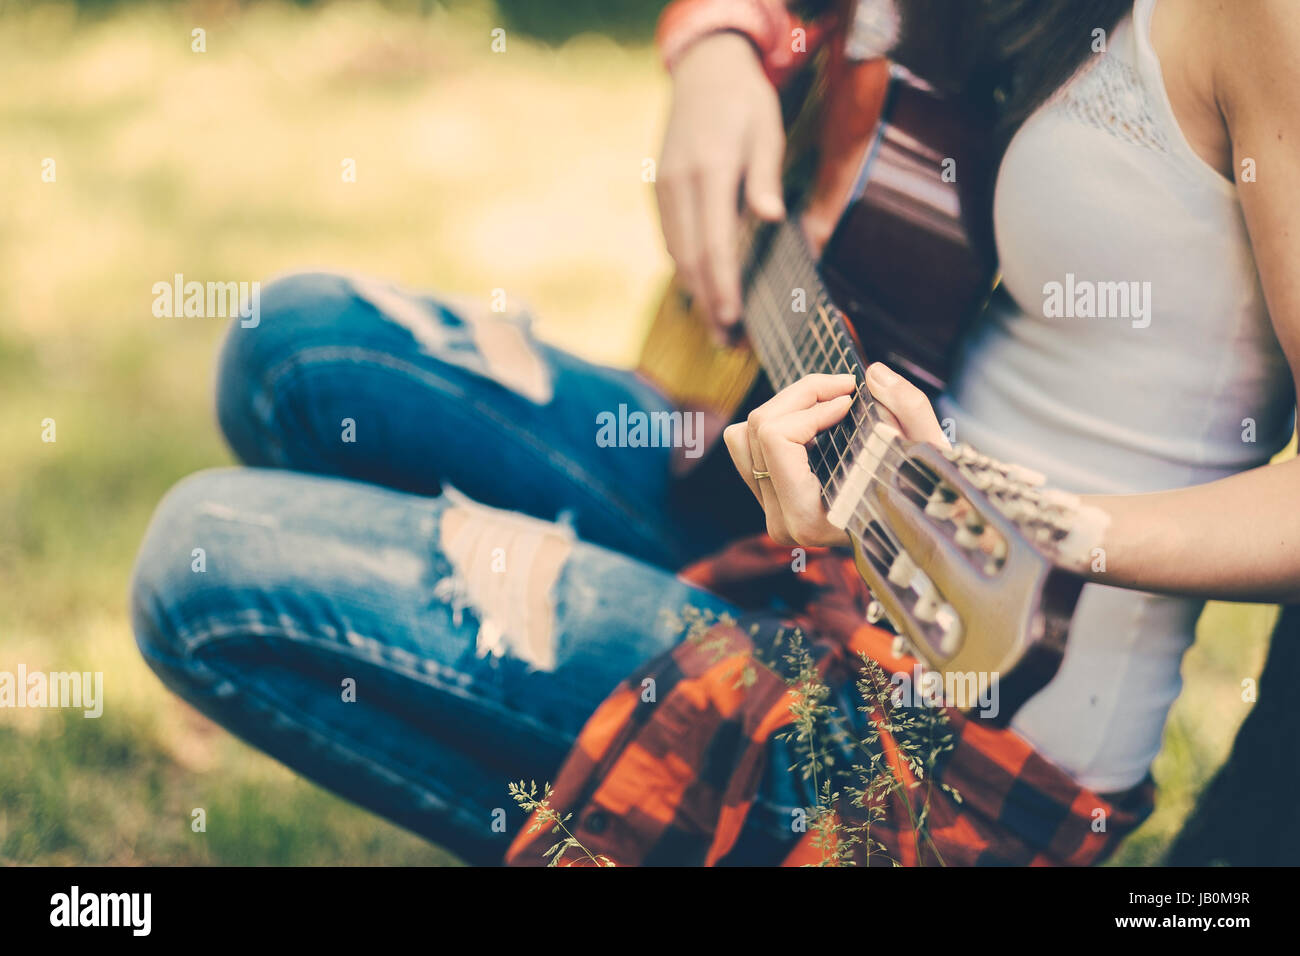 Festival woman with guitar at party Stock Photo